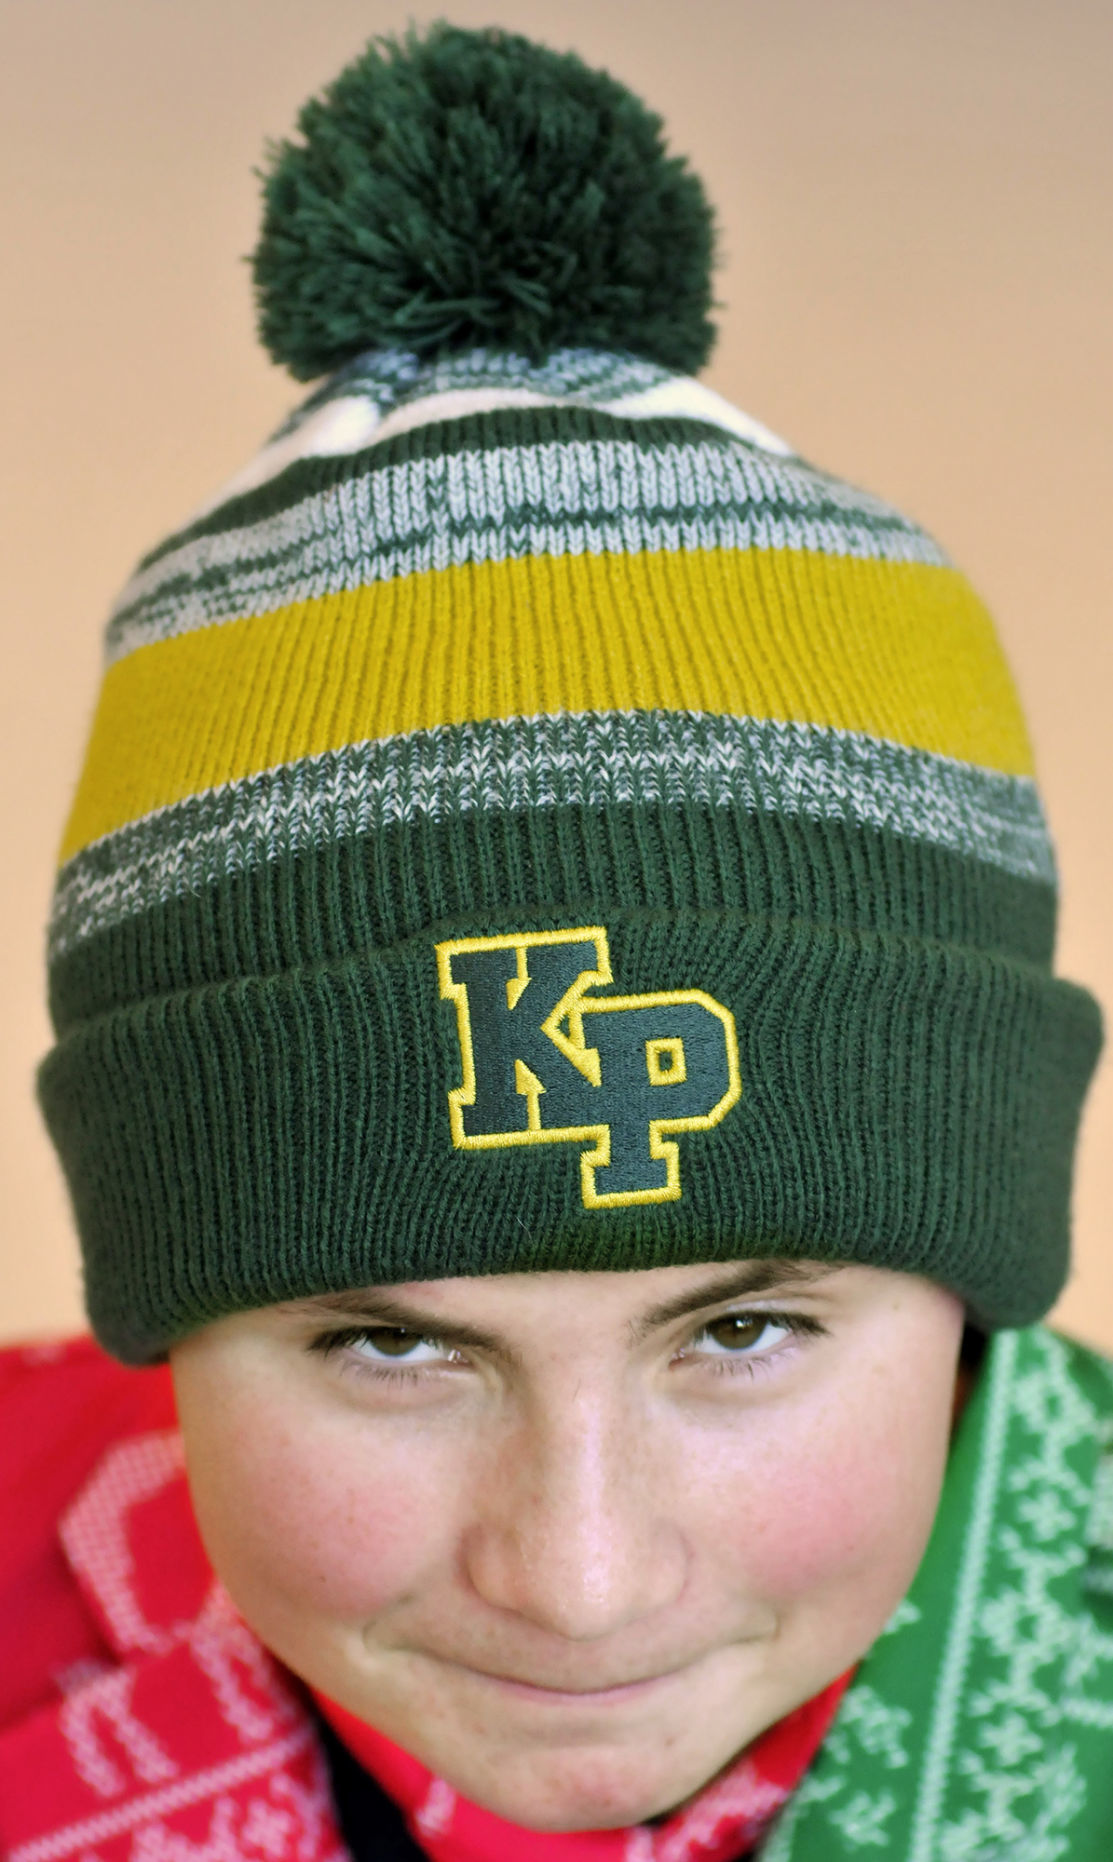 c58a67738ad King Philip student sells hats for a good cause